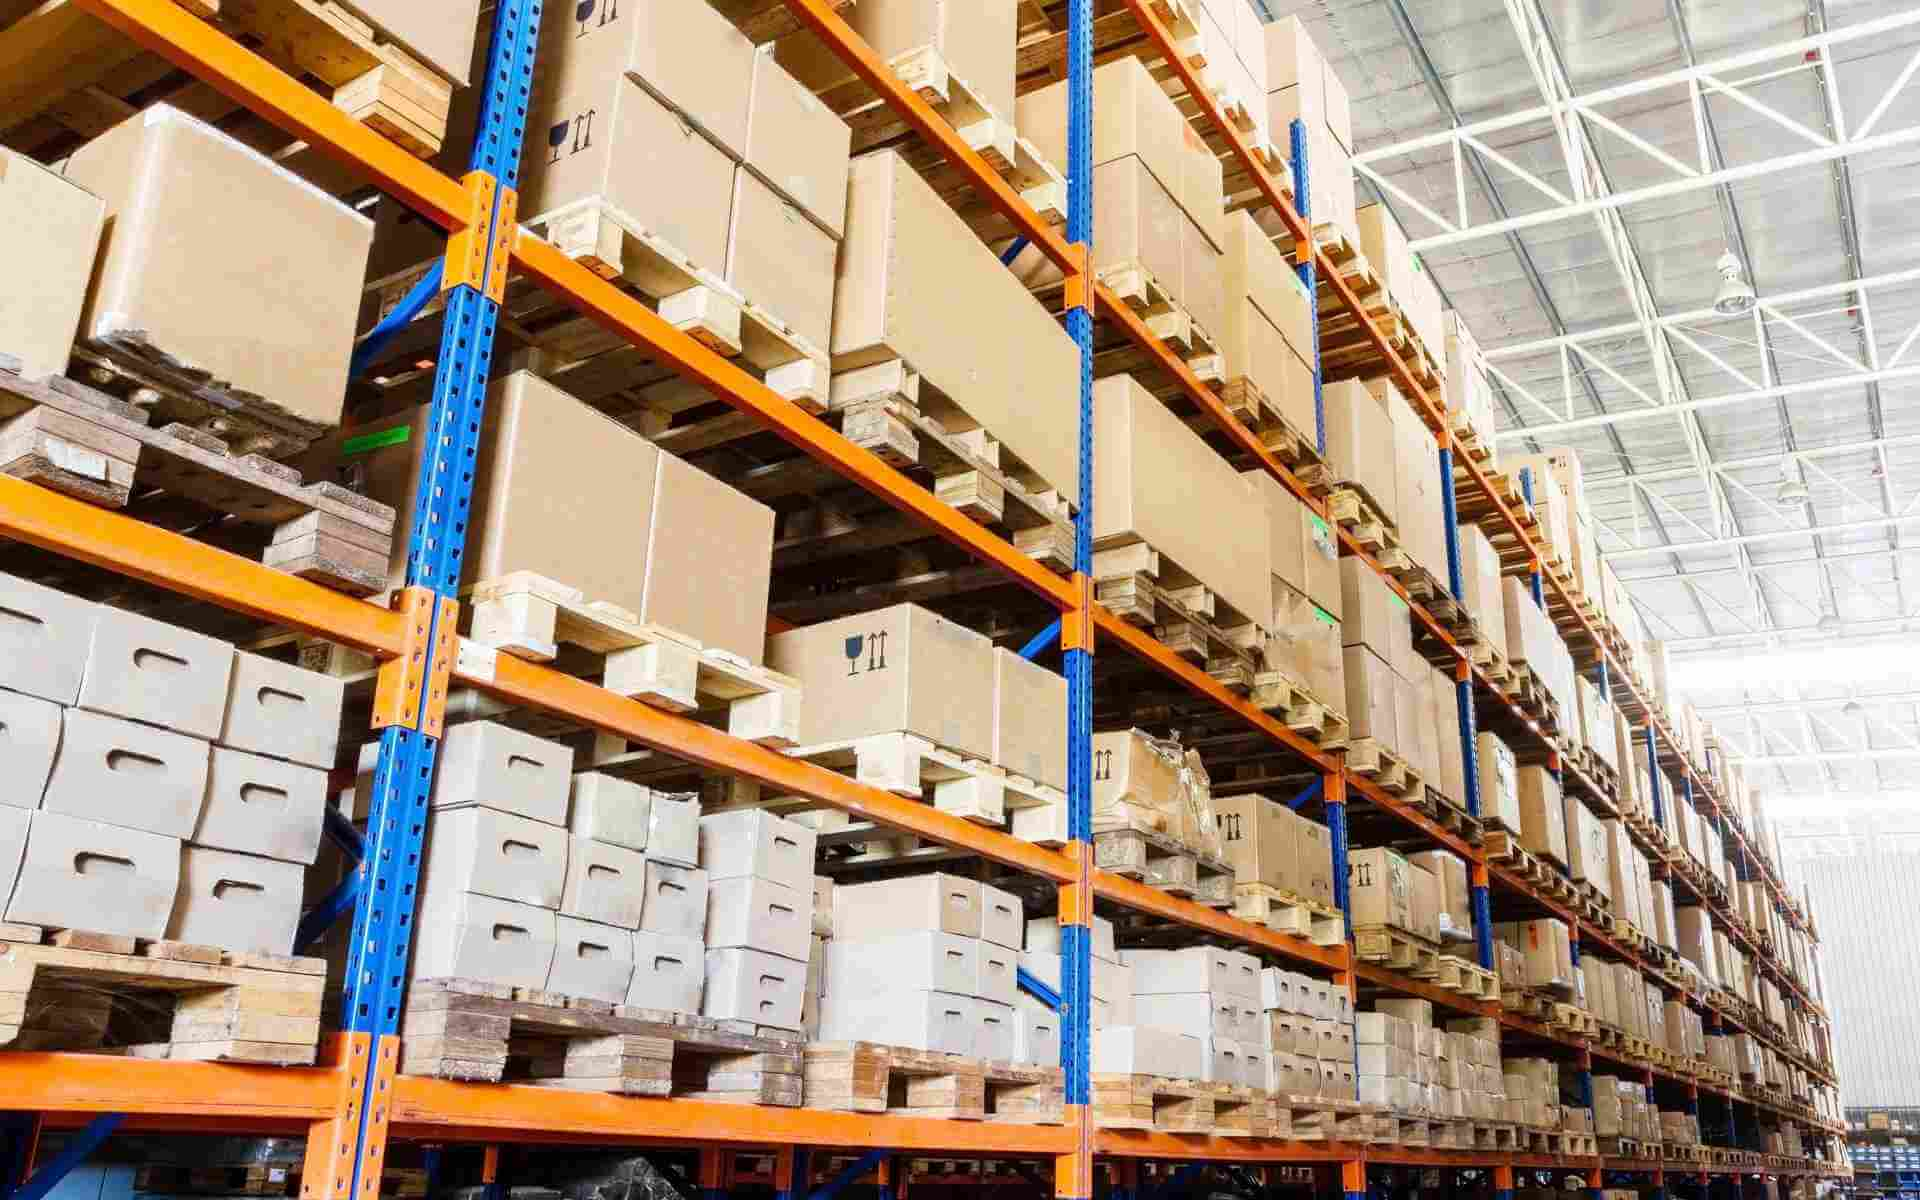 https://shiparoo.com/wp-content/uploads/2017/03/post_04.jpg